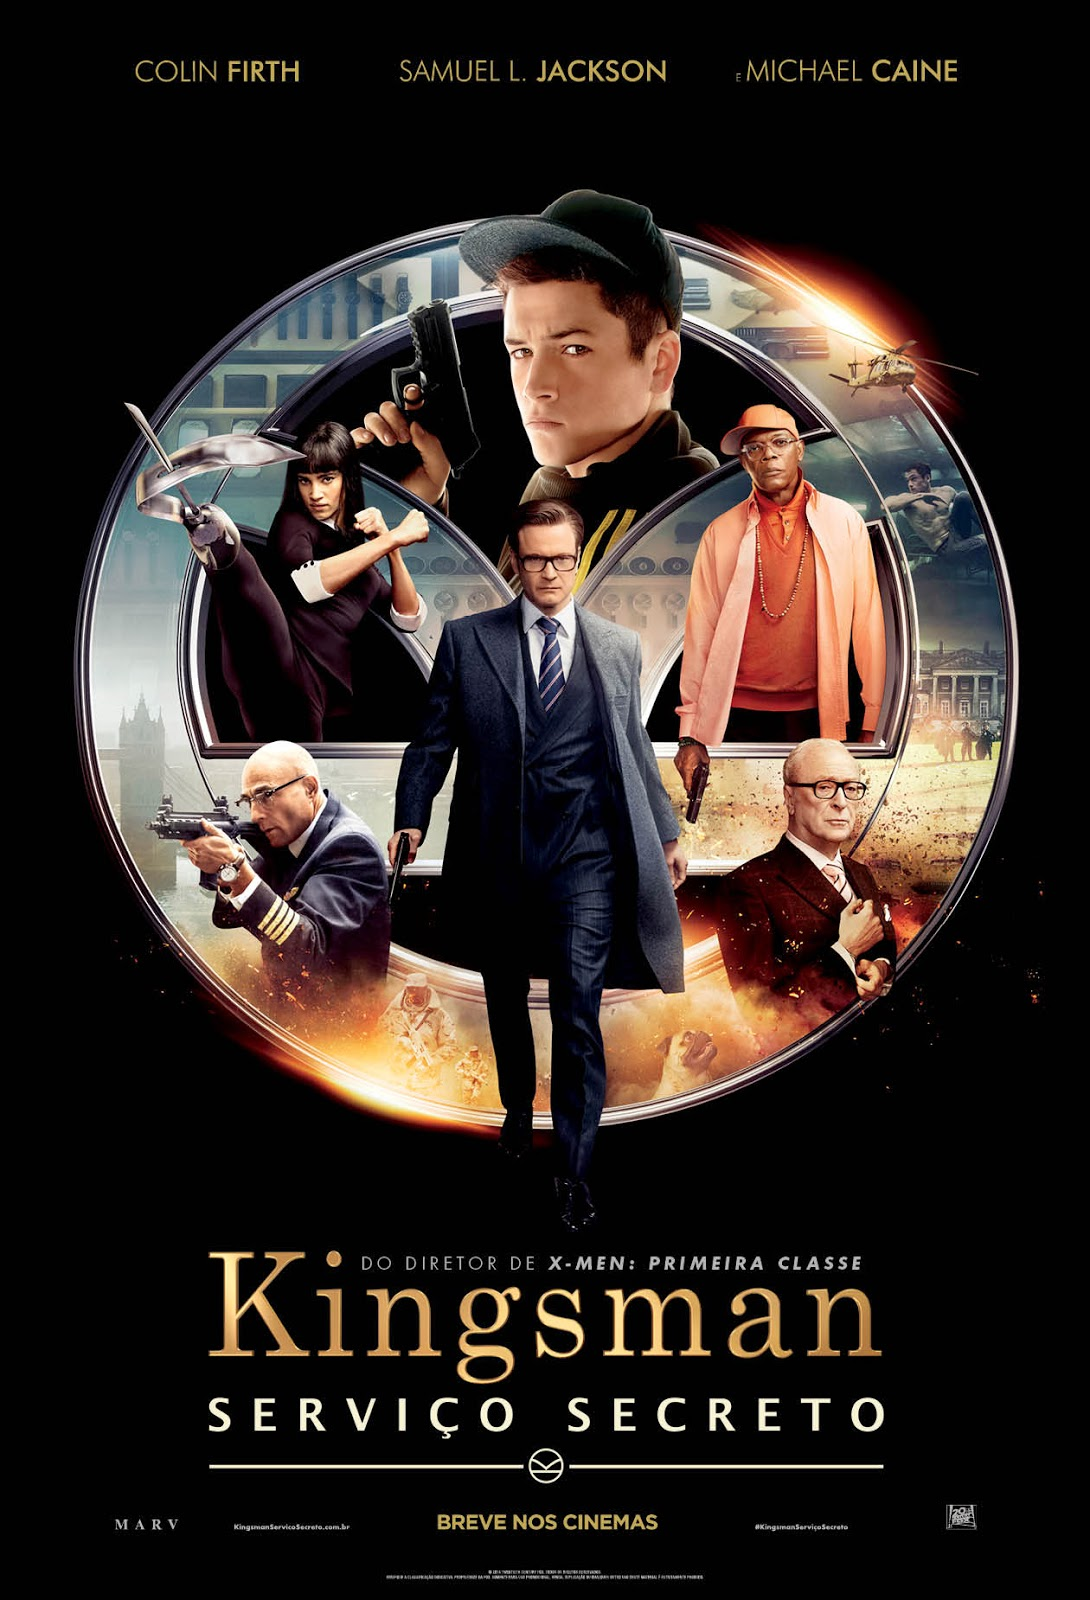 Kingsman – Serviço Secreto (2015) BRrip Blu-Ray 720p/1080p 5.1Ch Dublado – Torrent Download